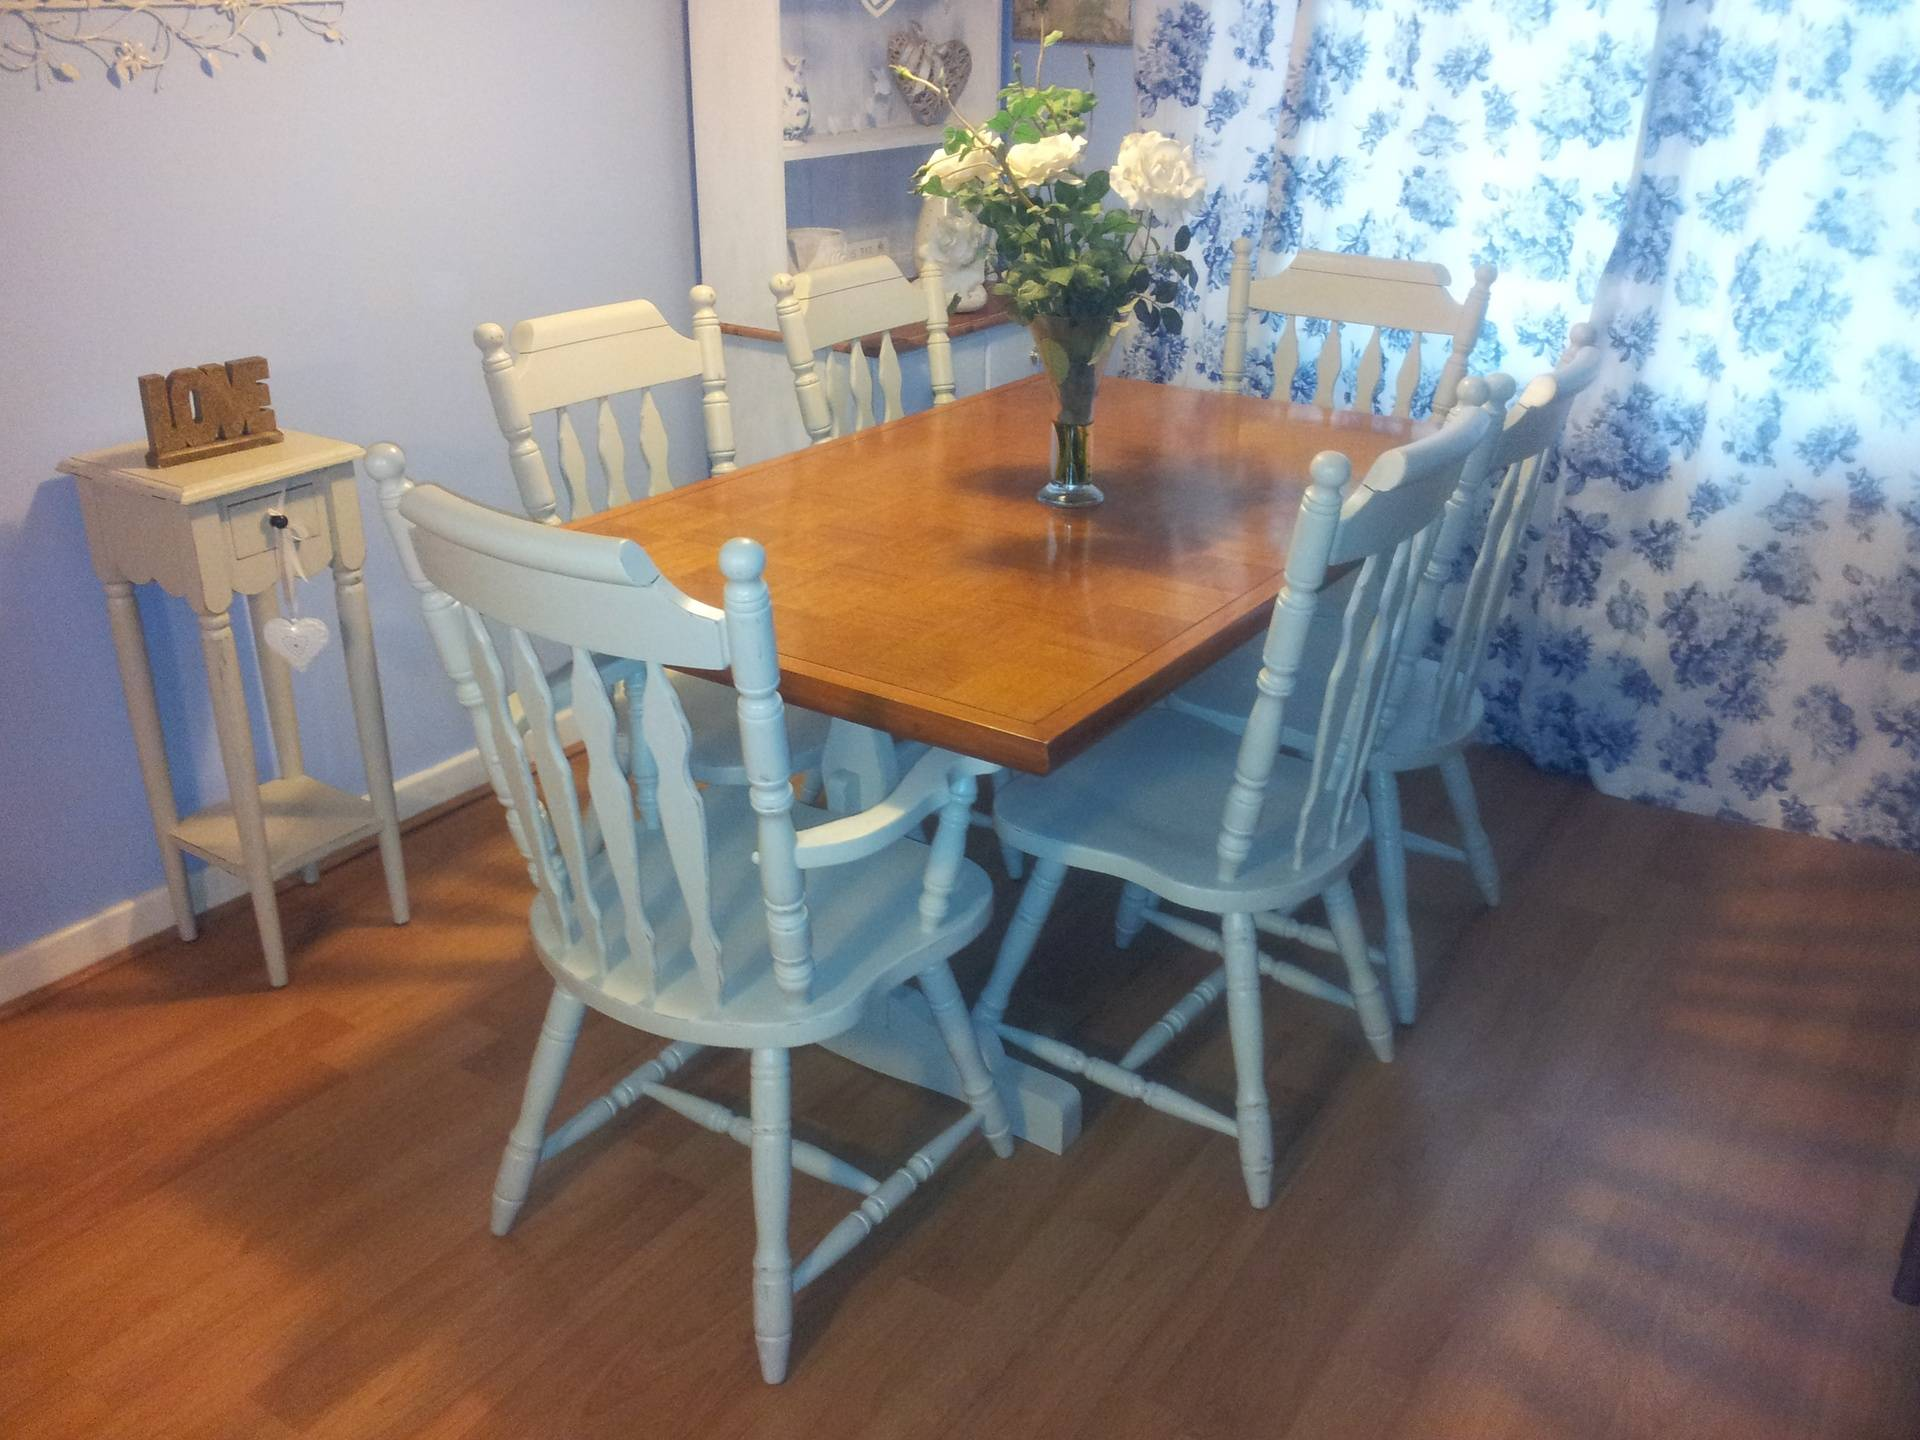 Beuatiful Chequered Inlay Pine Table & 4 Chairs in F & B French Gray.